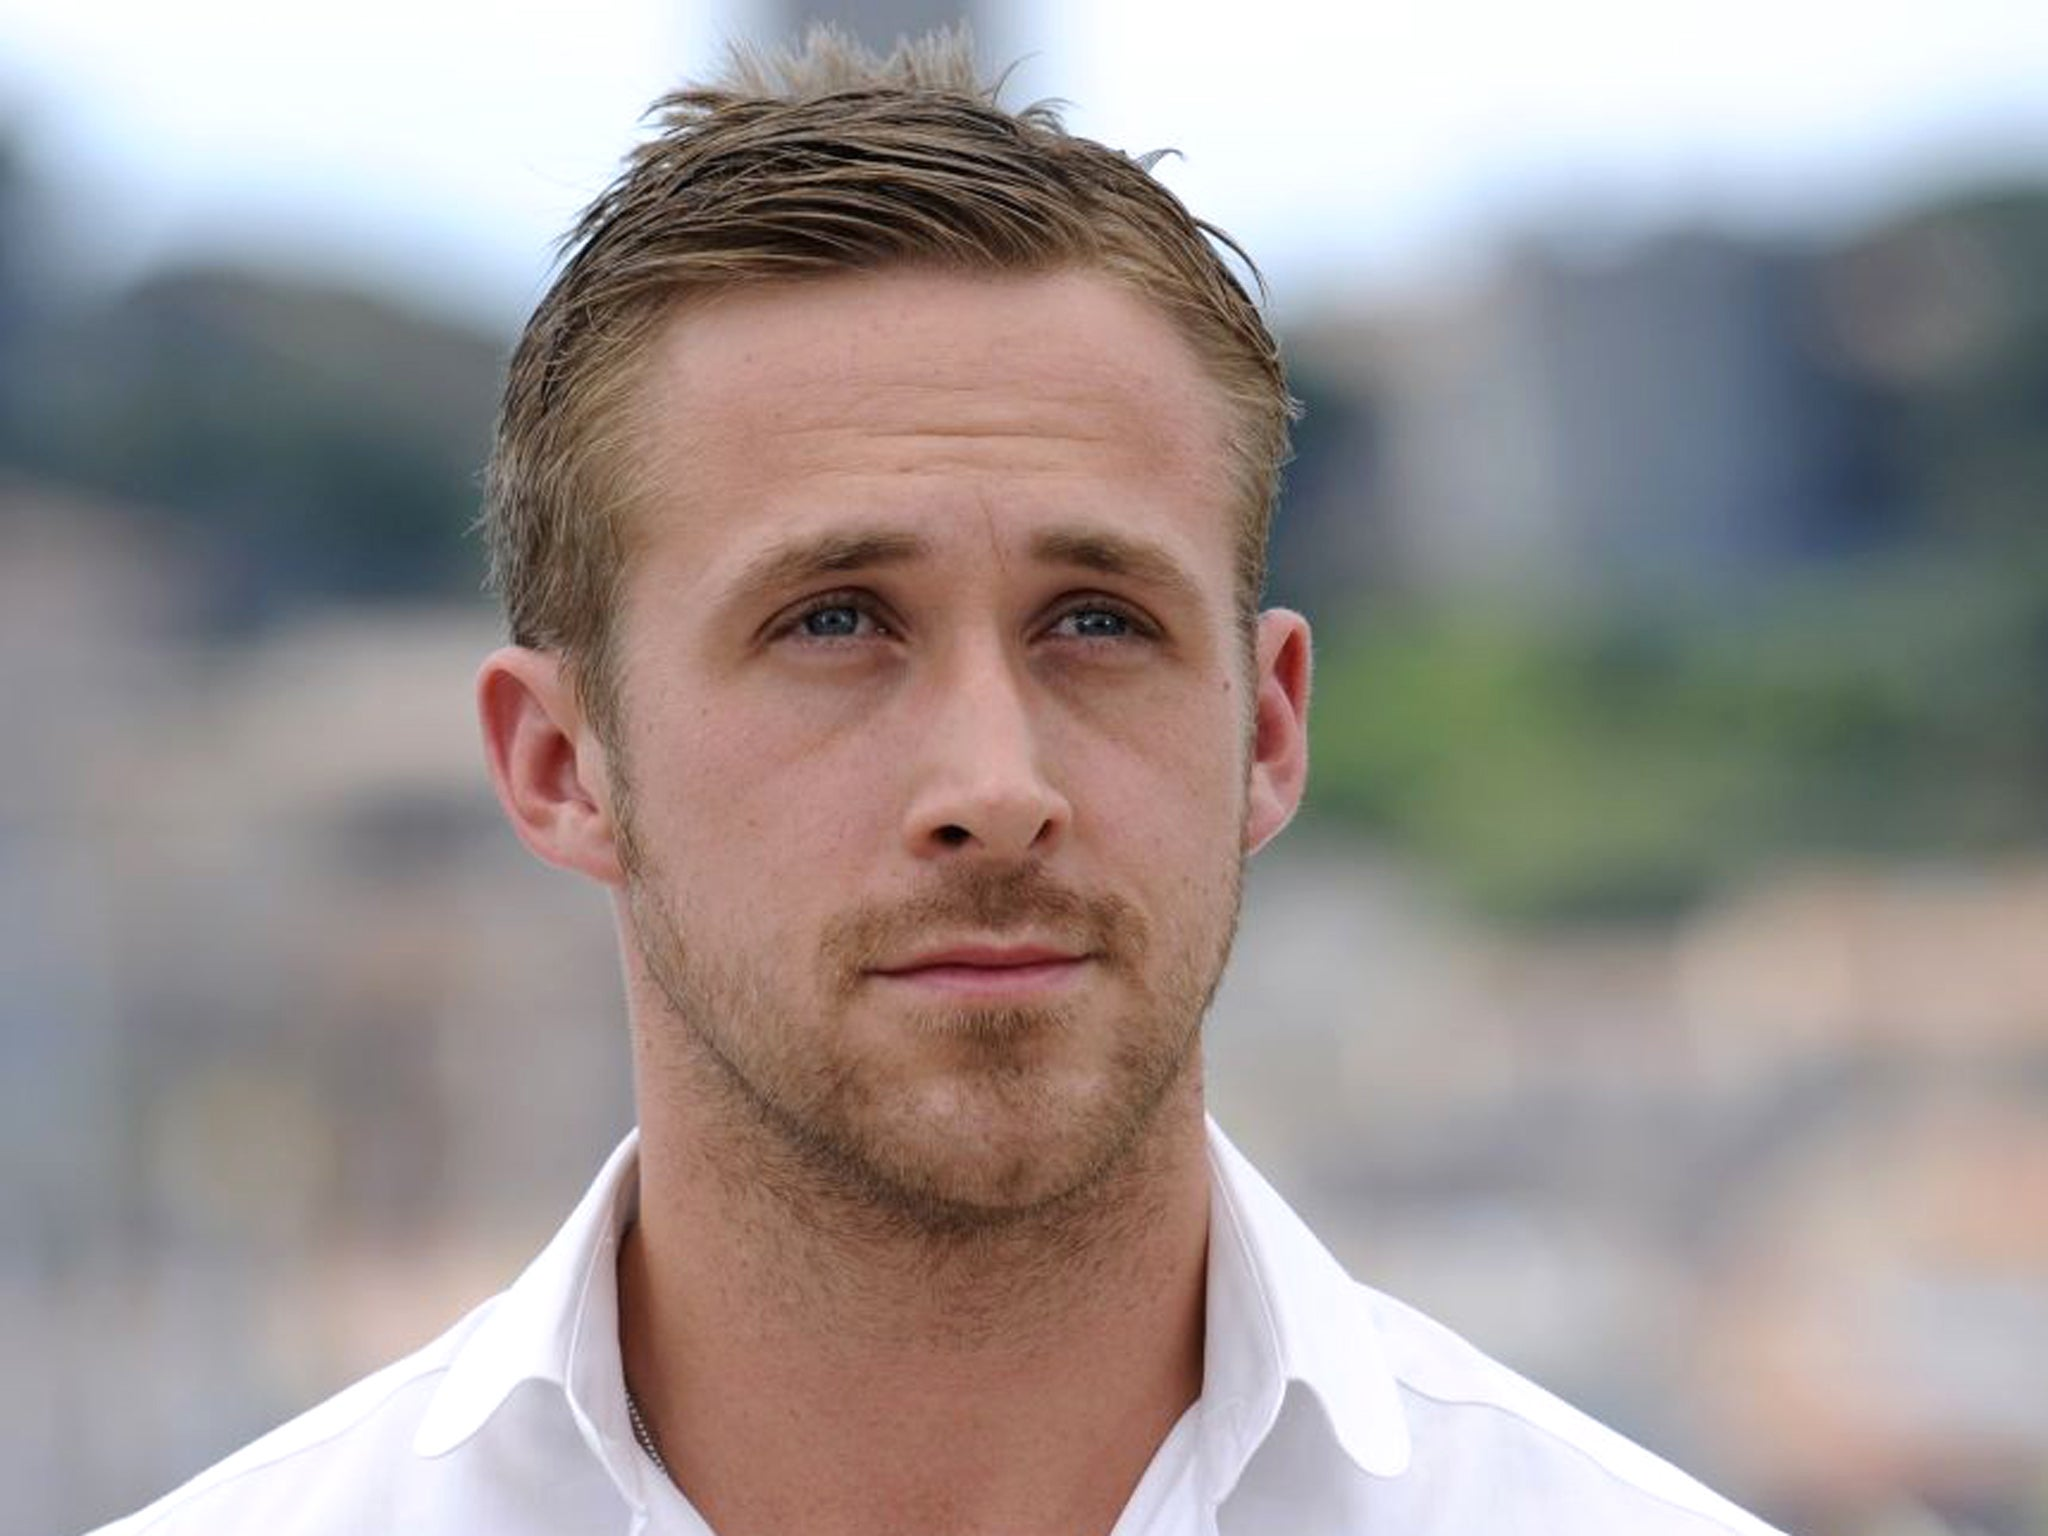 Ryan Gosling tells all about the love of his life (his dog, George) | The ...